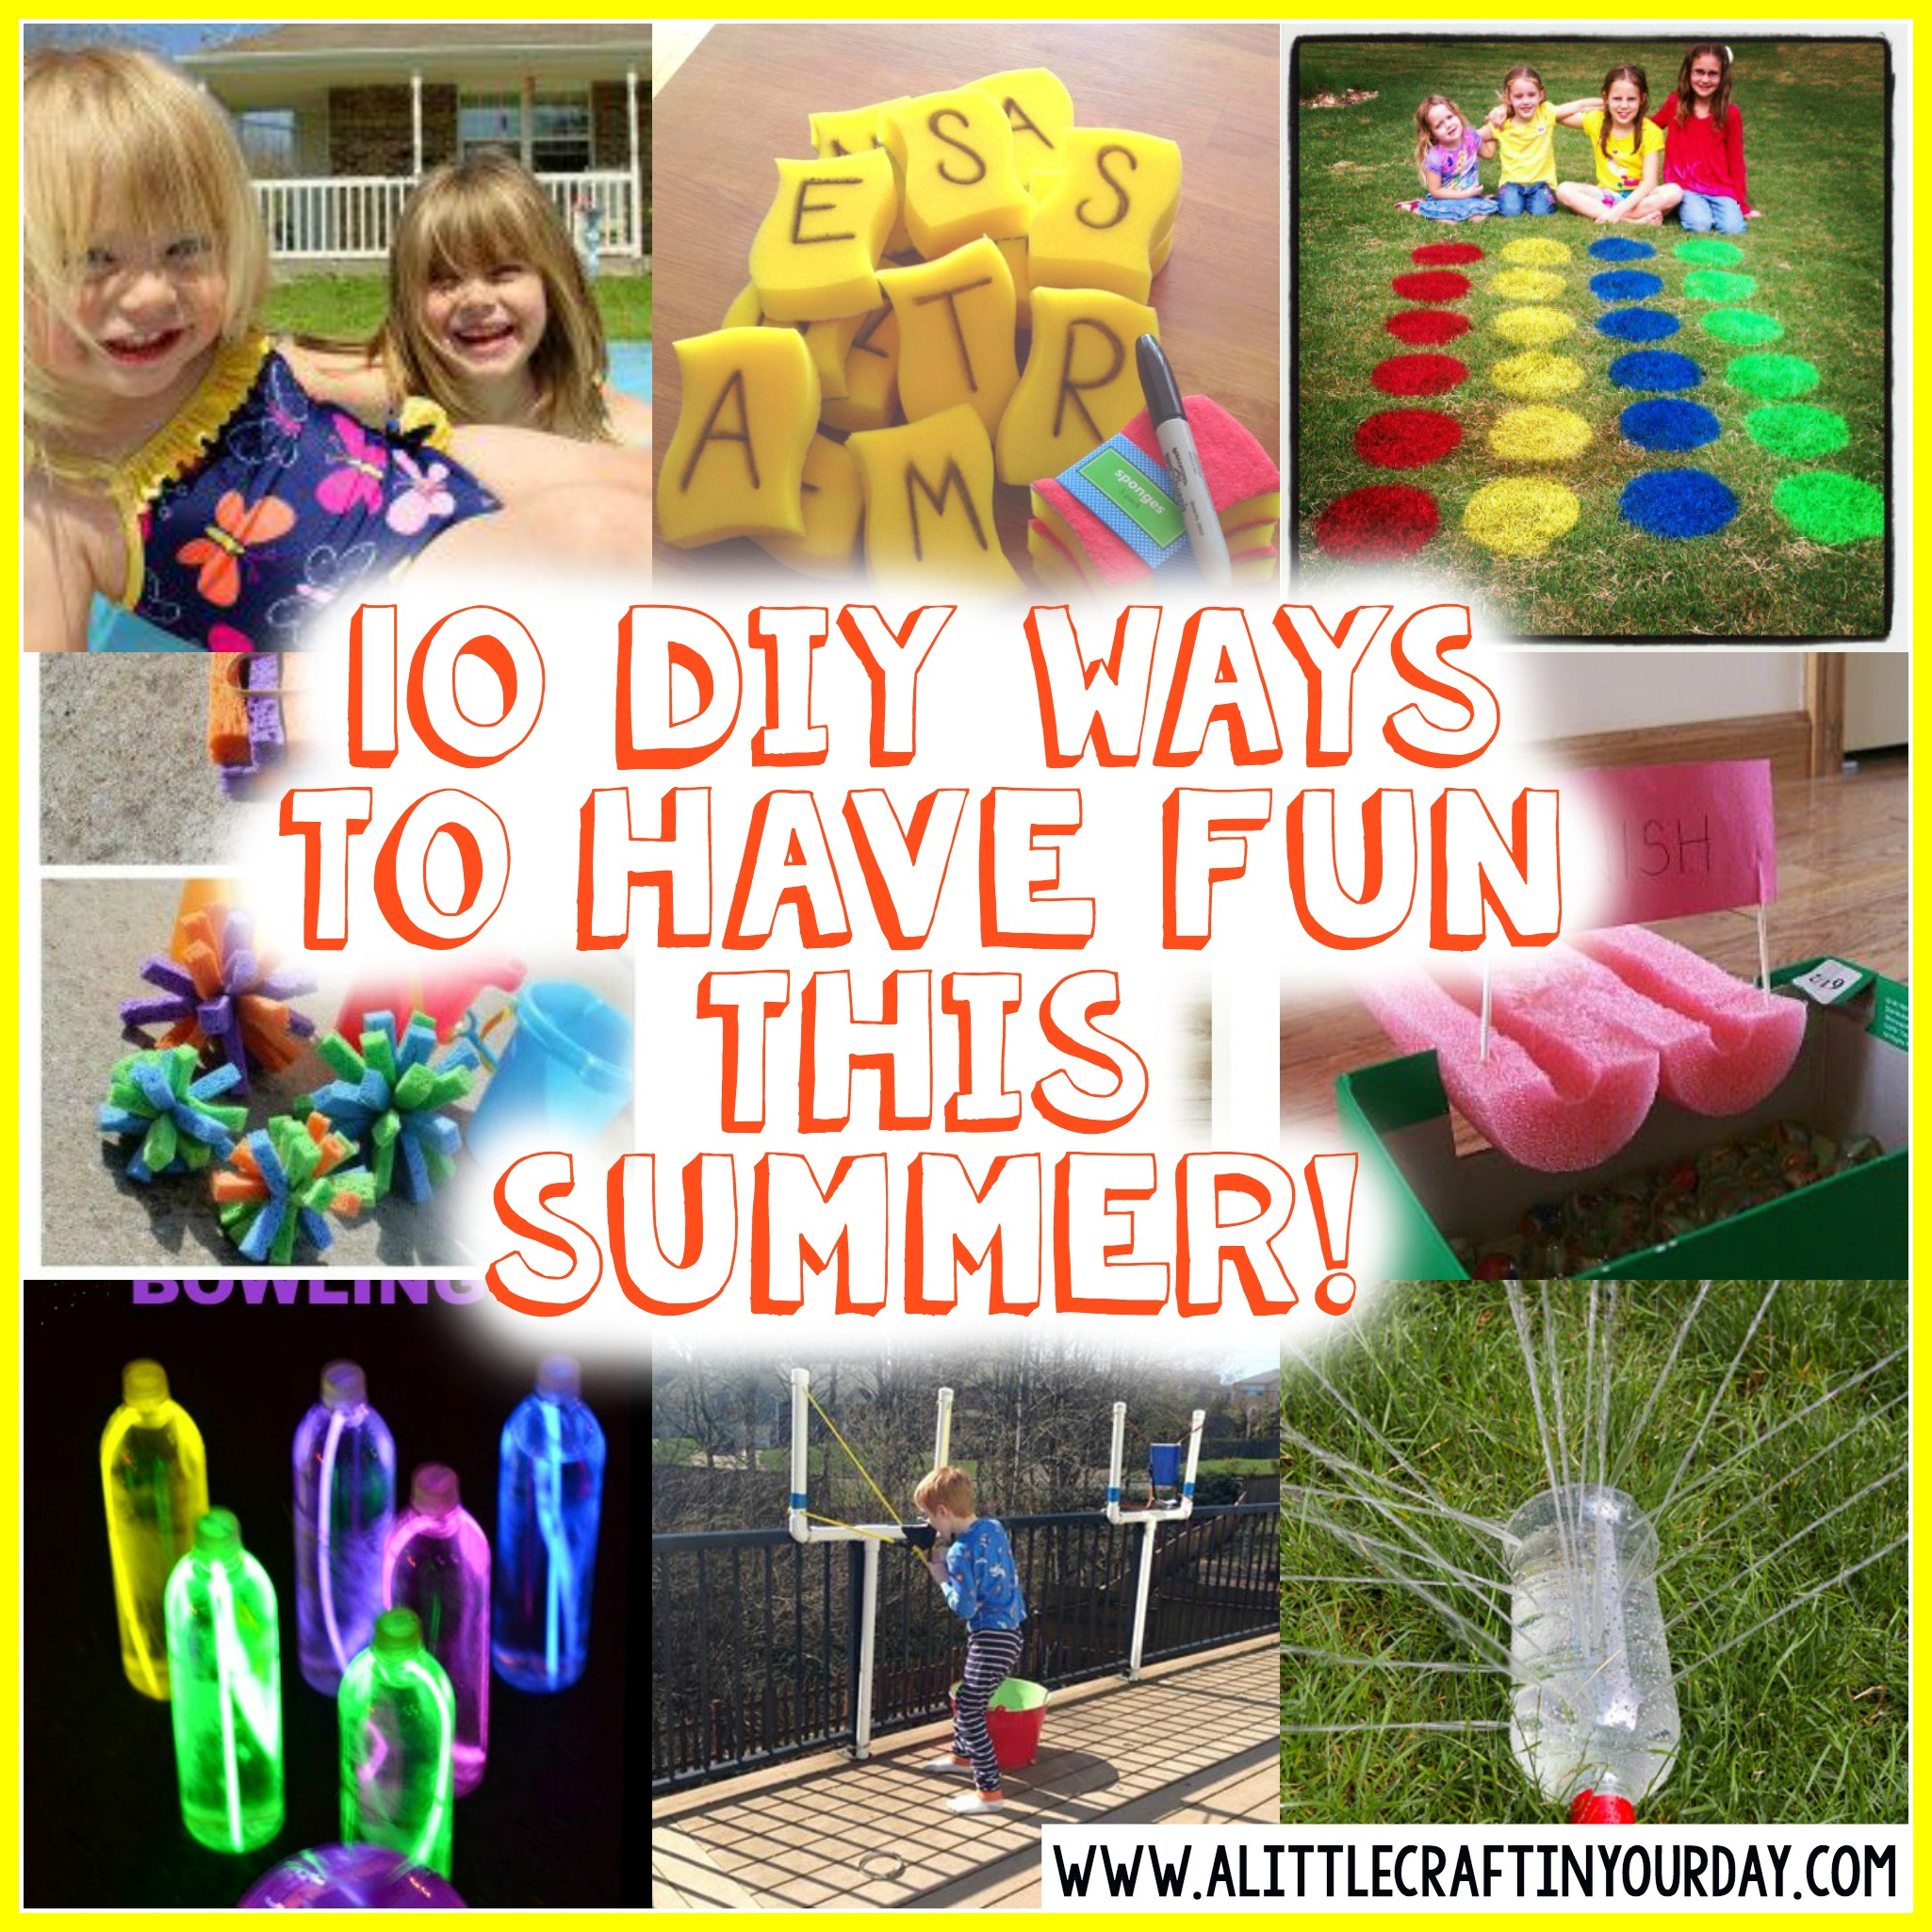 10 Diy Ways To Have Fun This Summer A Little Craft In